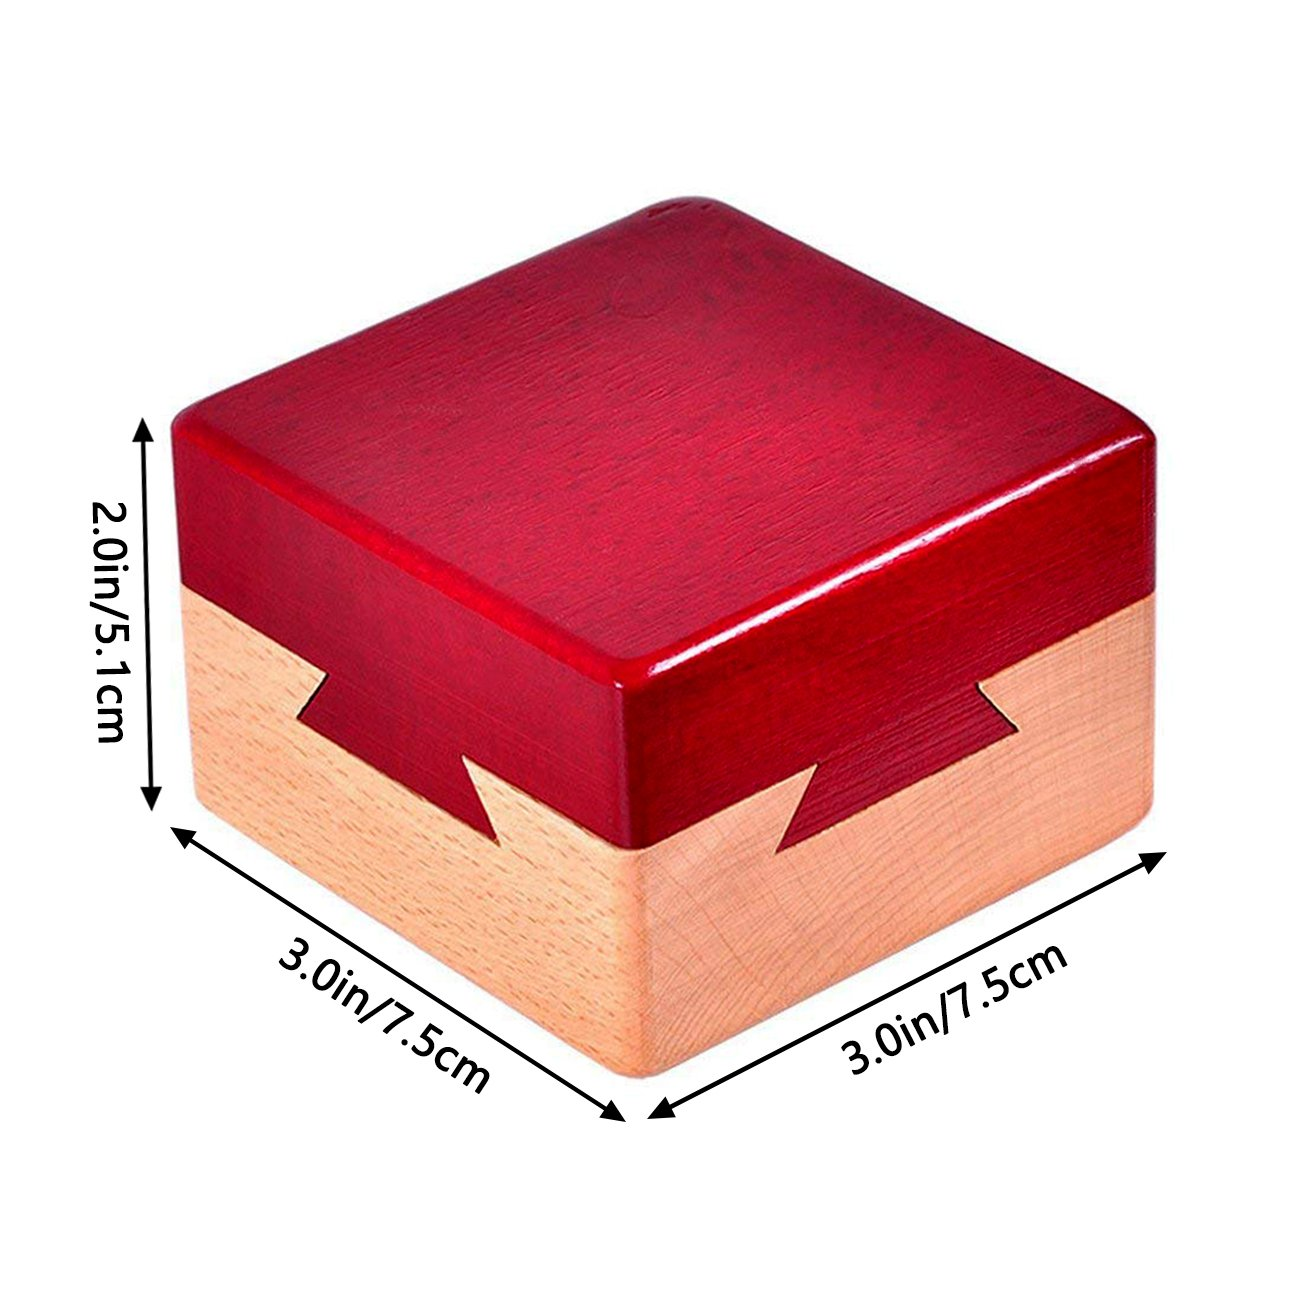 Impossible Dovetail Box Mini 3D Brain Teaser Wooden Magic Drawers Gift Jewelery Box Puzzle Toy.